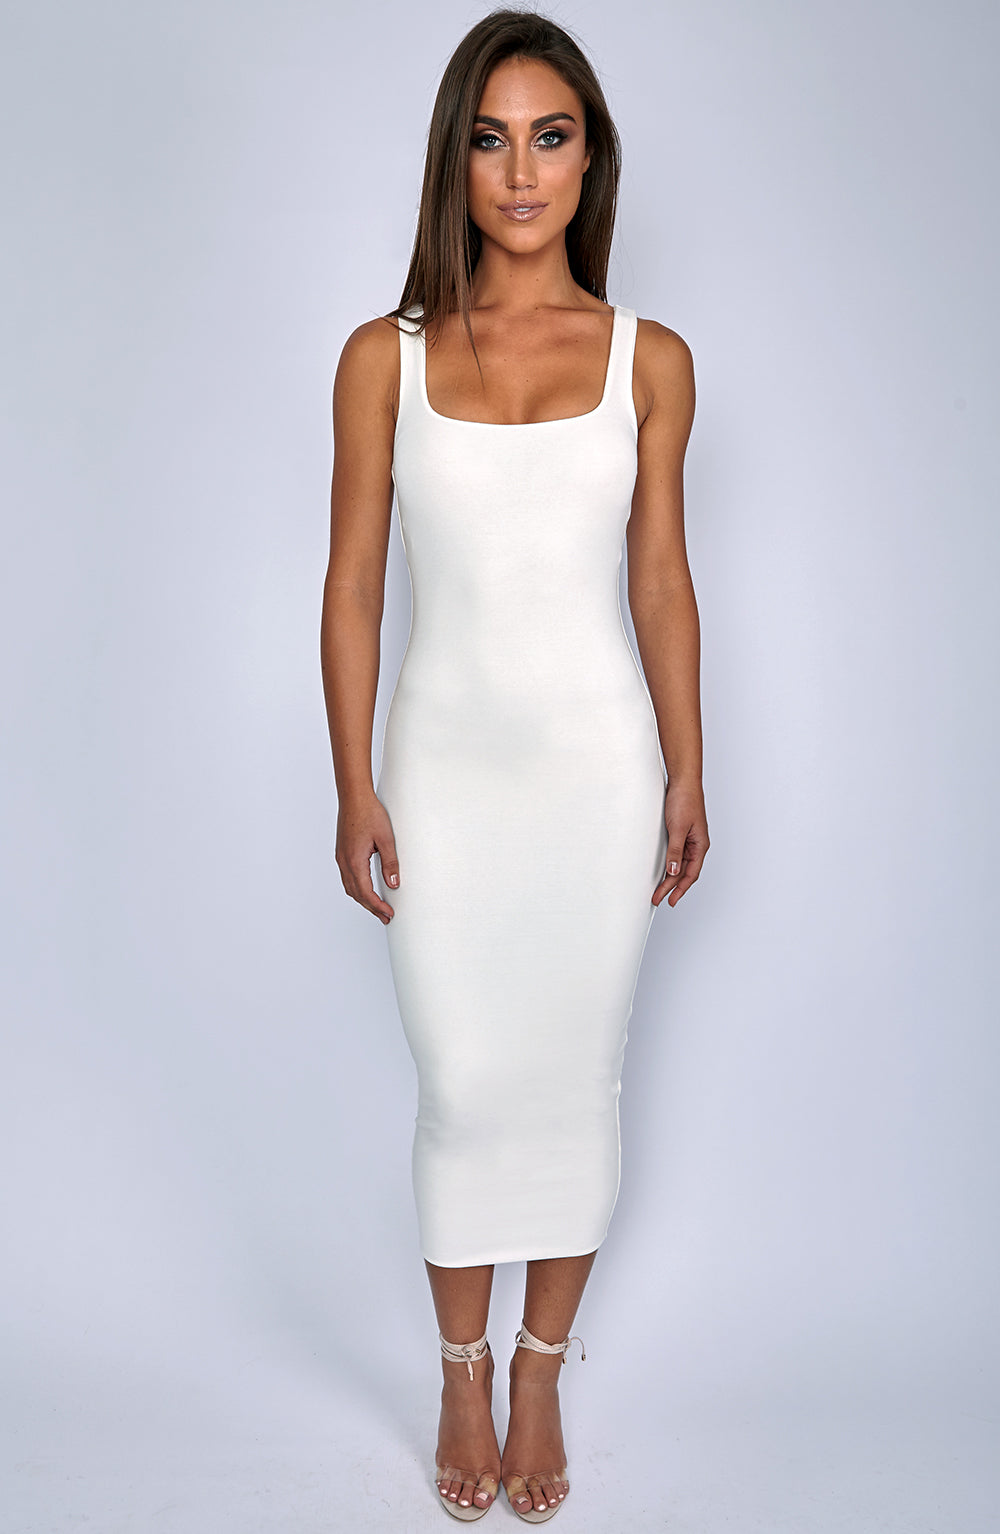 Basic Bish Dress - Cream